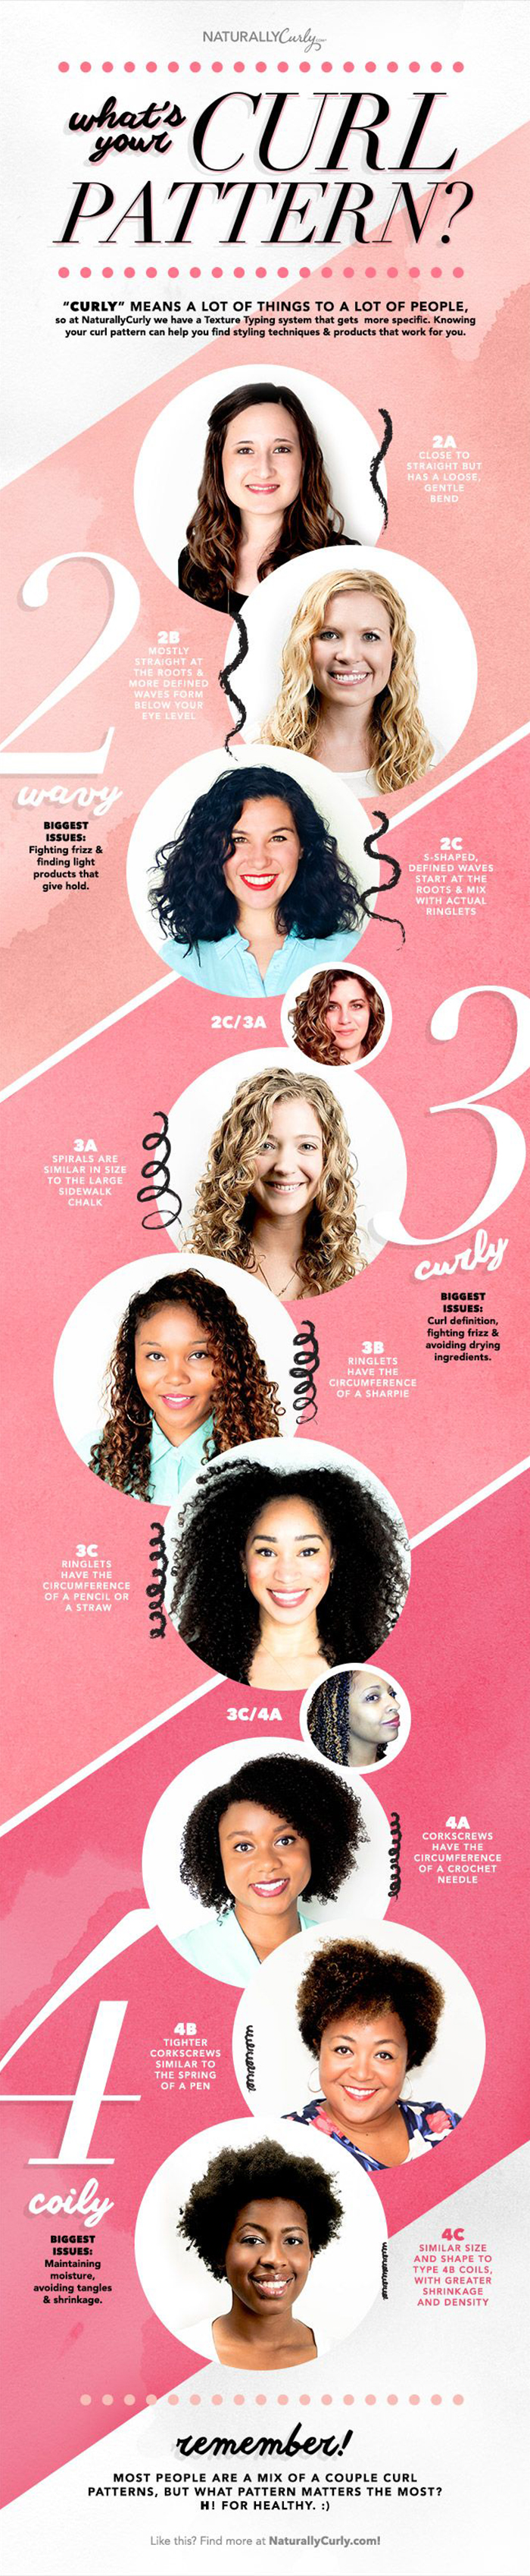 Curly Hair Guide What S Your Curl Pattern Naturallycurly Com